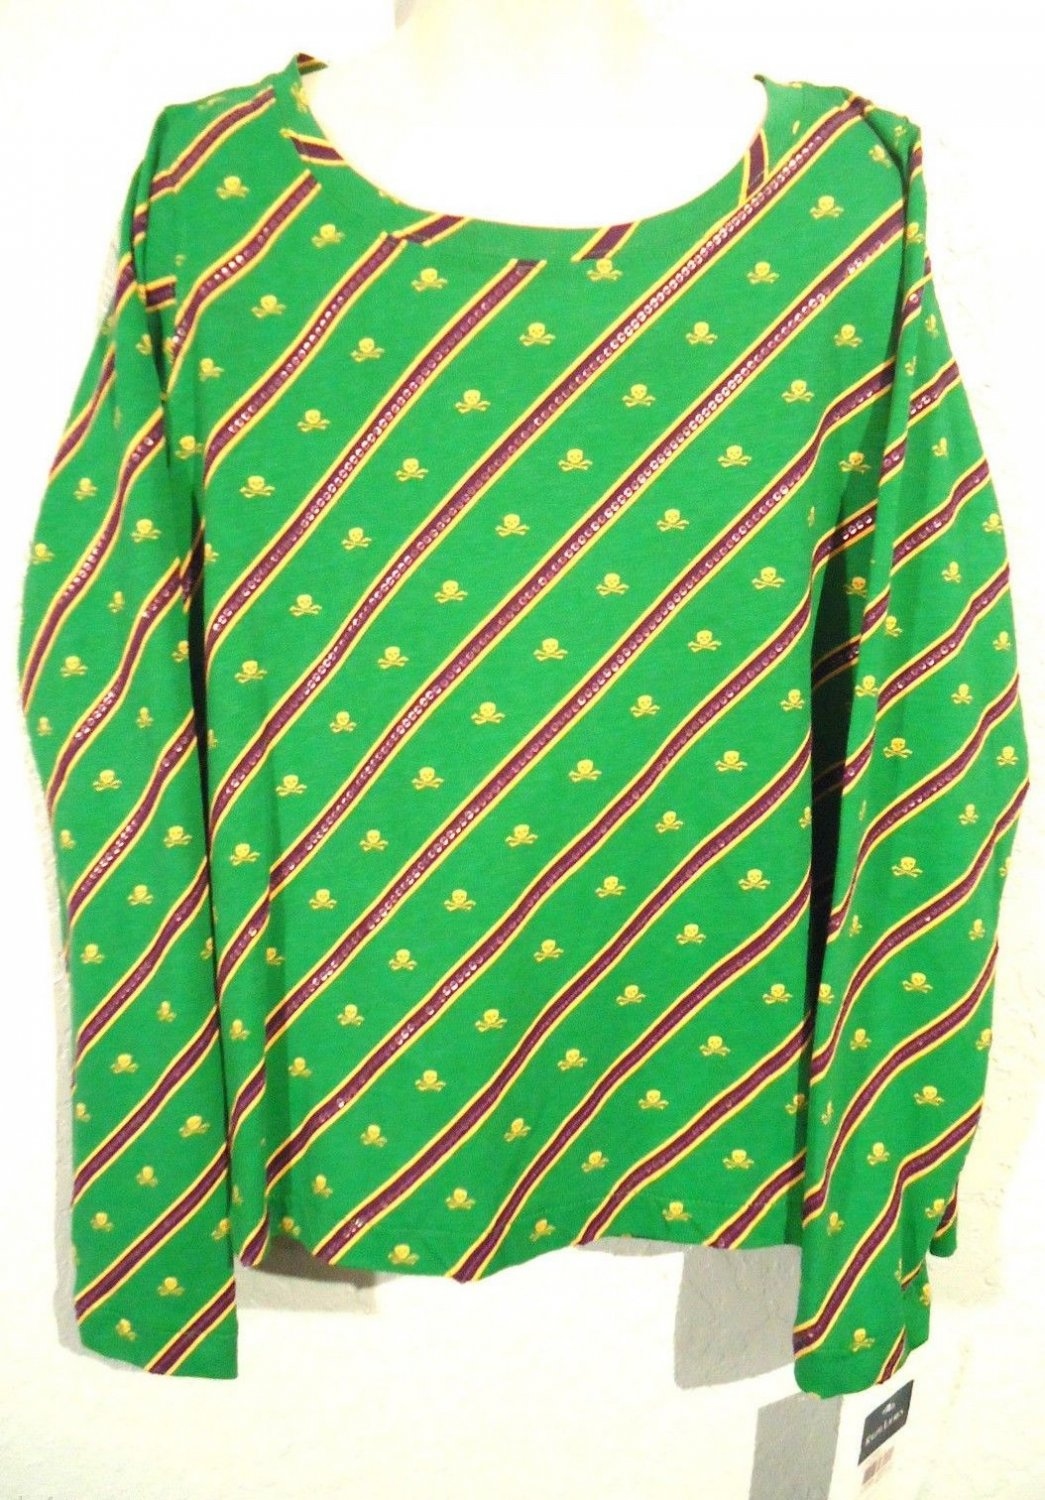 RALPH LAUREN - POLO - GIRL'S - GREEN - CROSSBONES - RUGBY - SHIRT - 8-10 - NEW